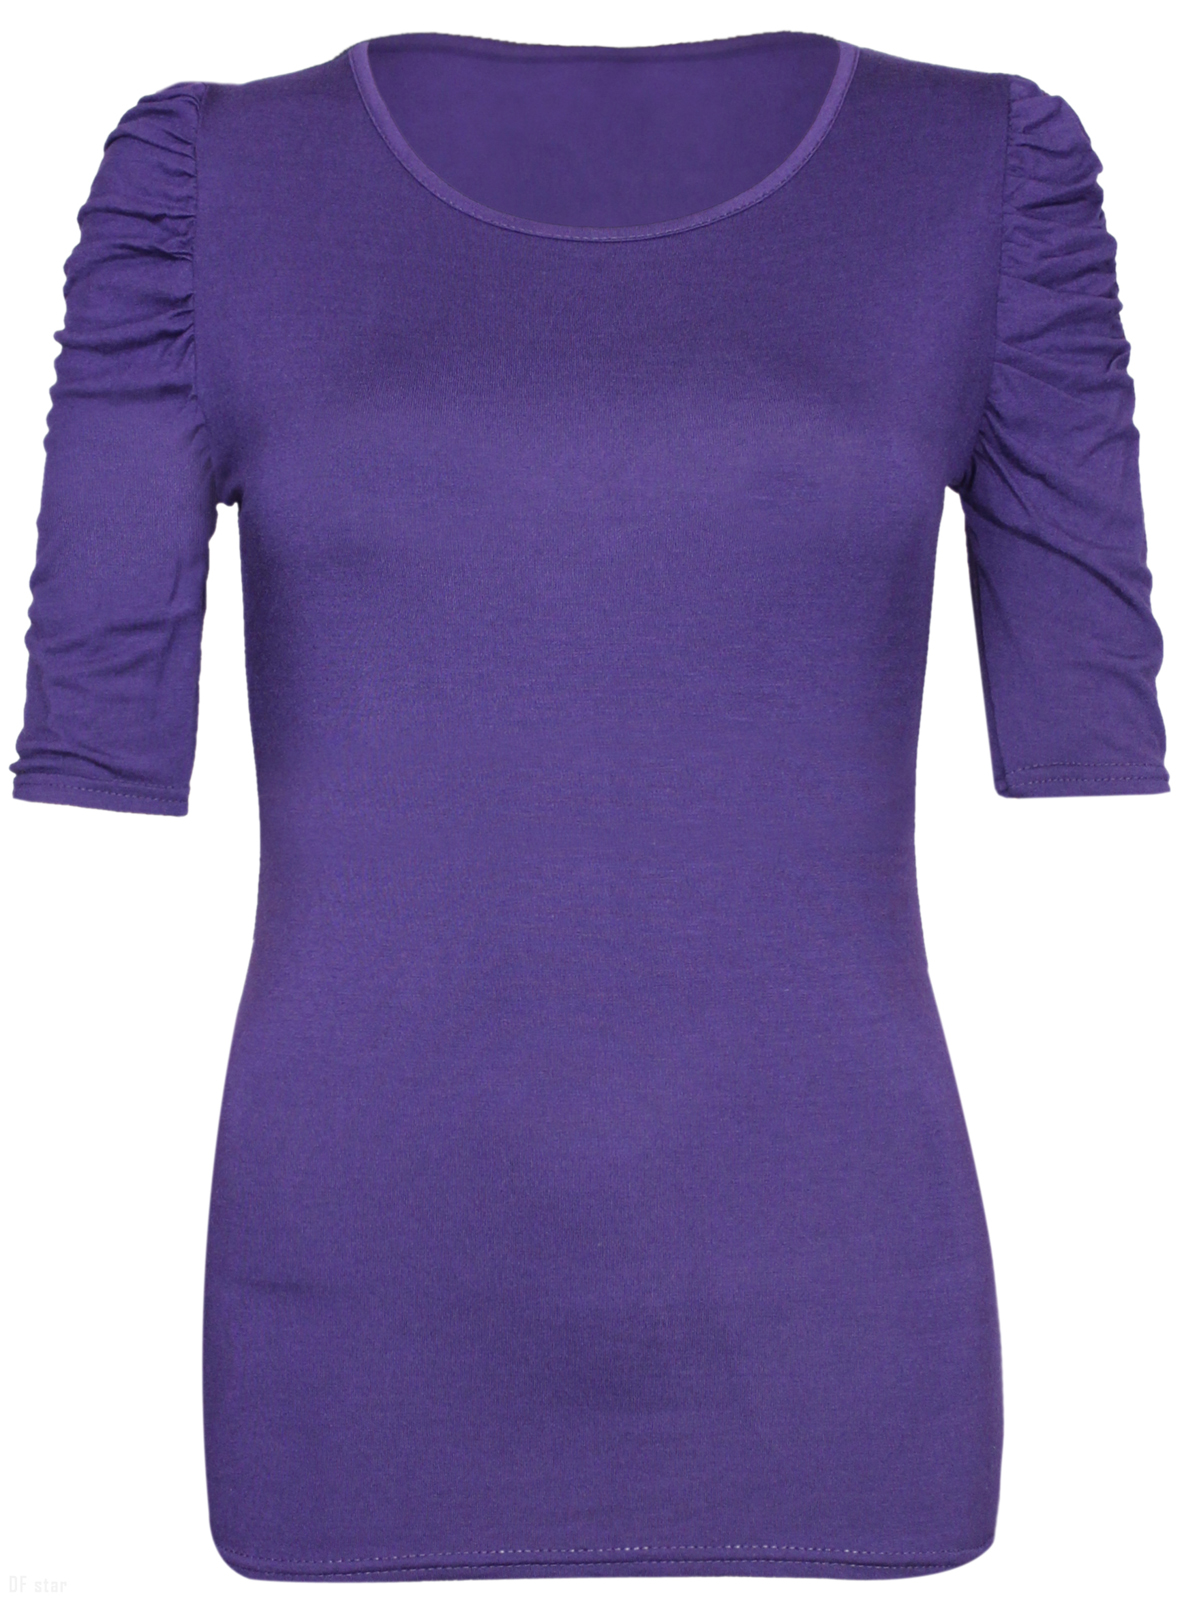 NEW-LADIES-RUCHED-SHORT-SLEEVE-WOMENS-LONG-STRETCH-TOP 縮圖 30